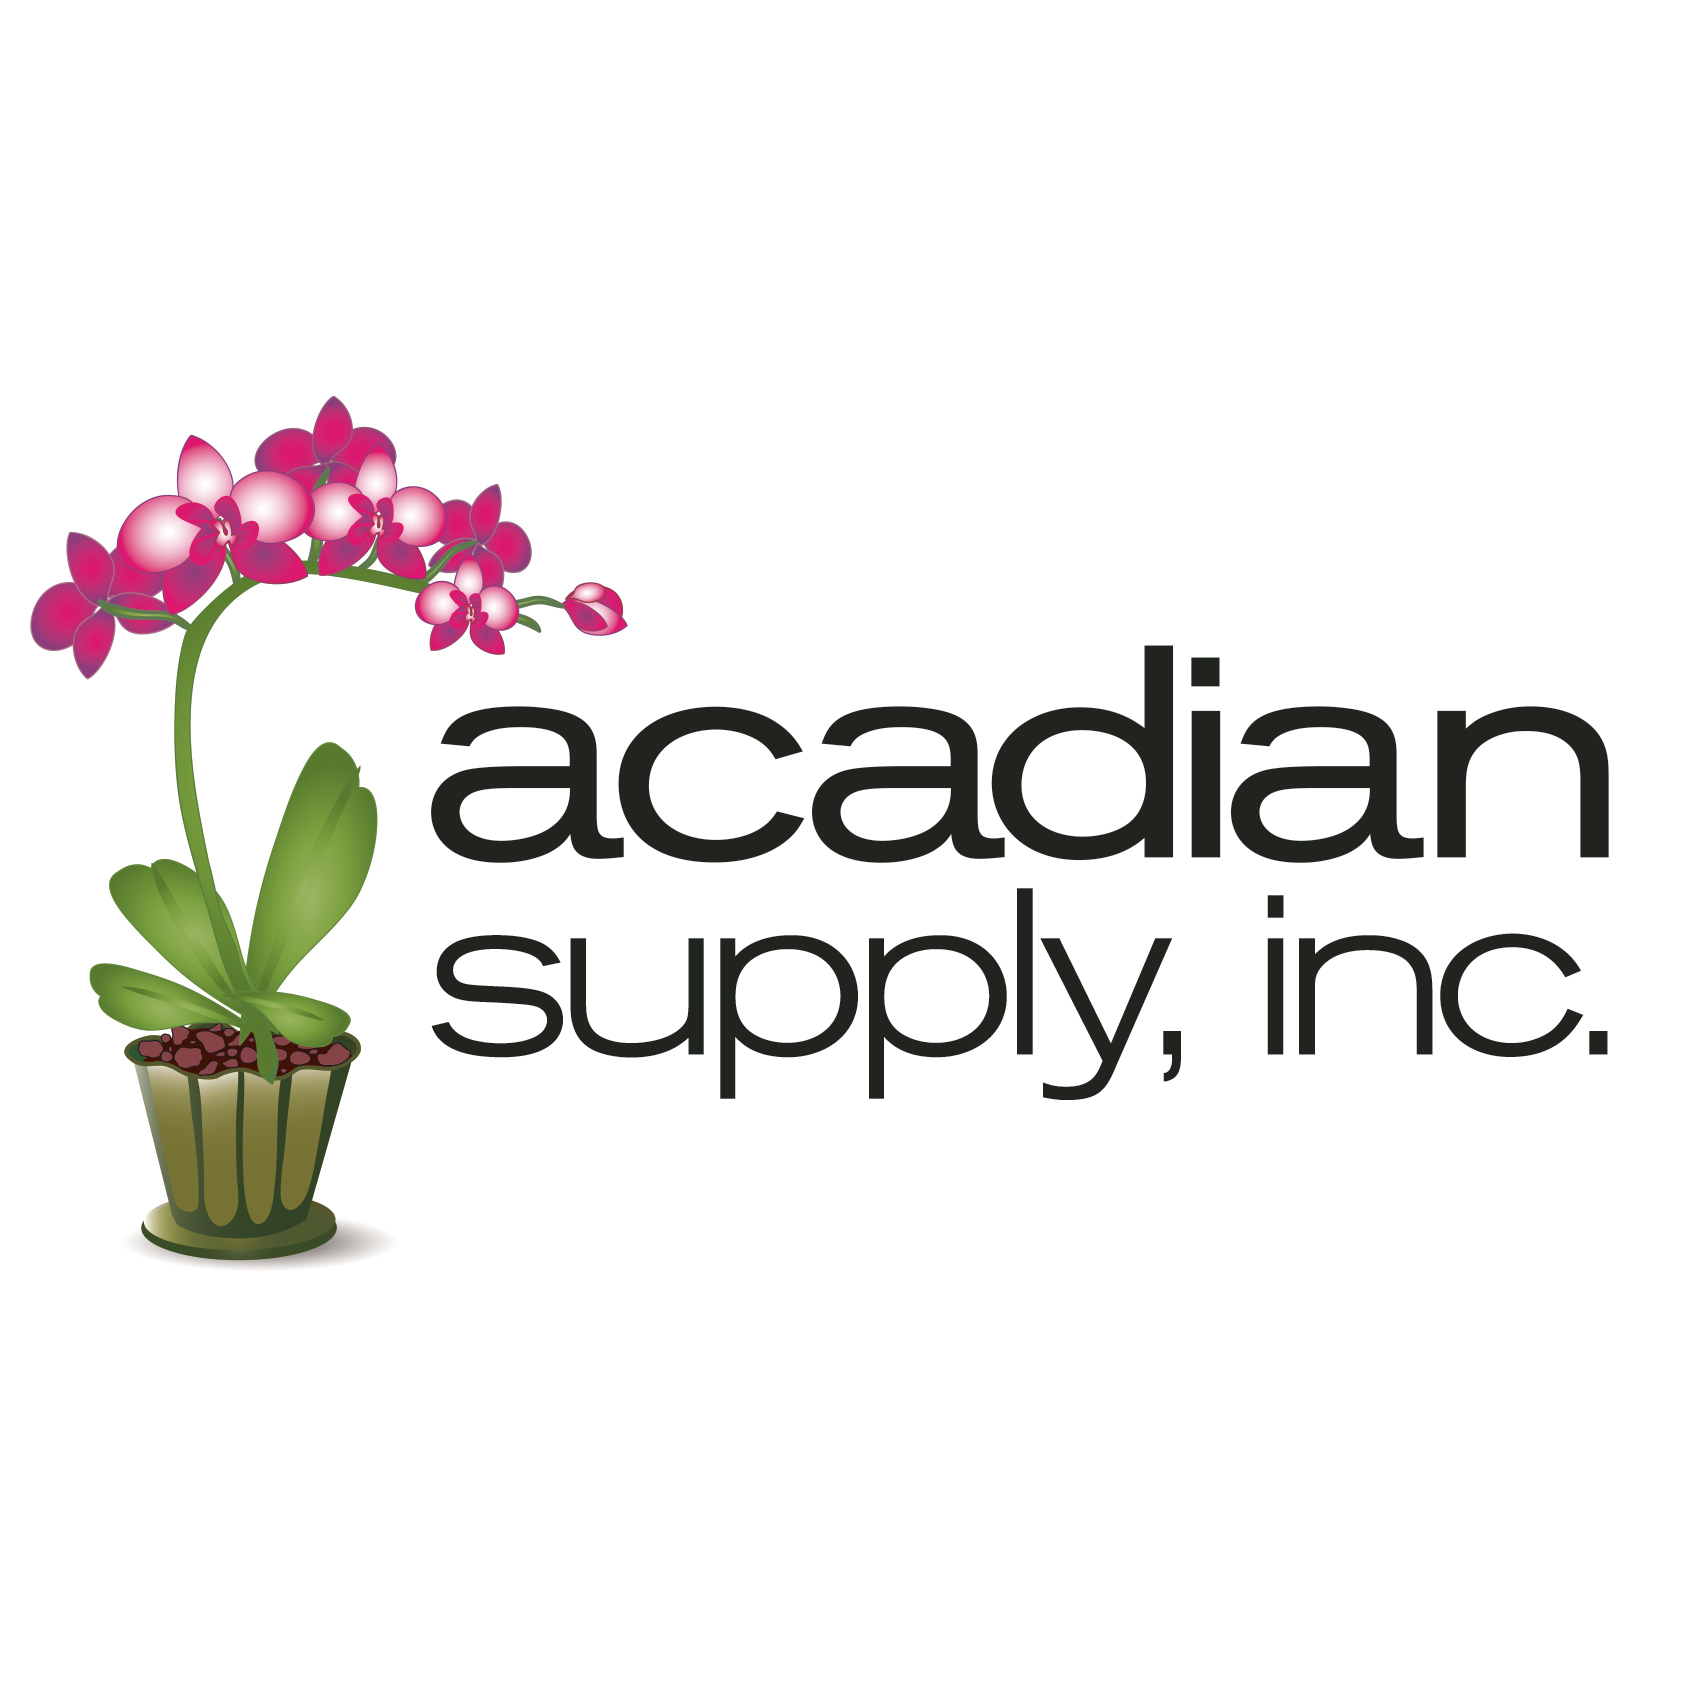 Acadian Supply. Inc. image 5